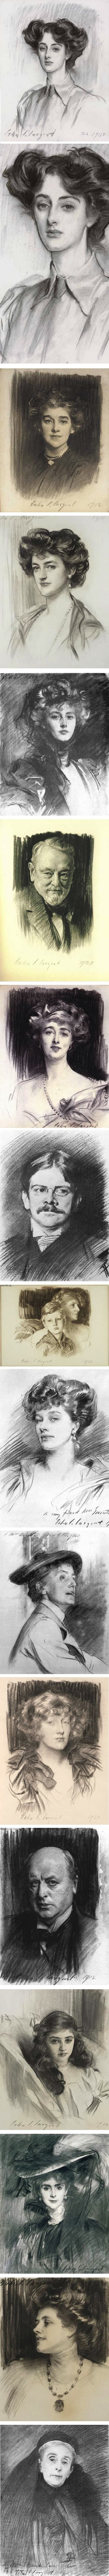 John Singer Sargent portrait drawings                                                                                                                                                                                 More